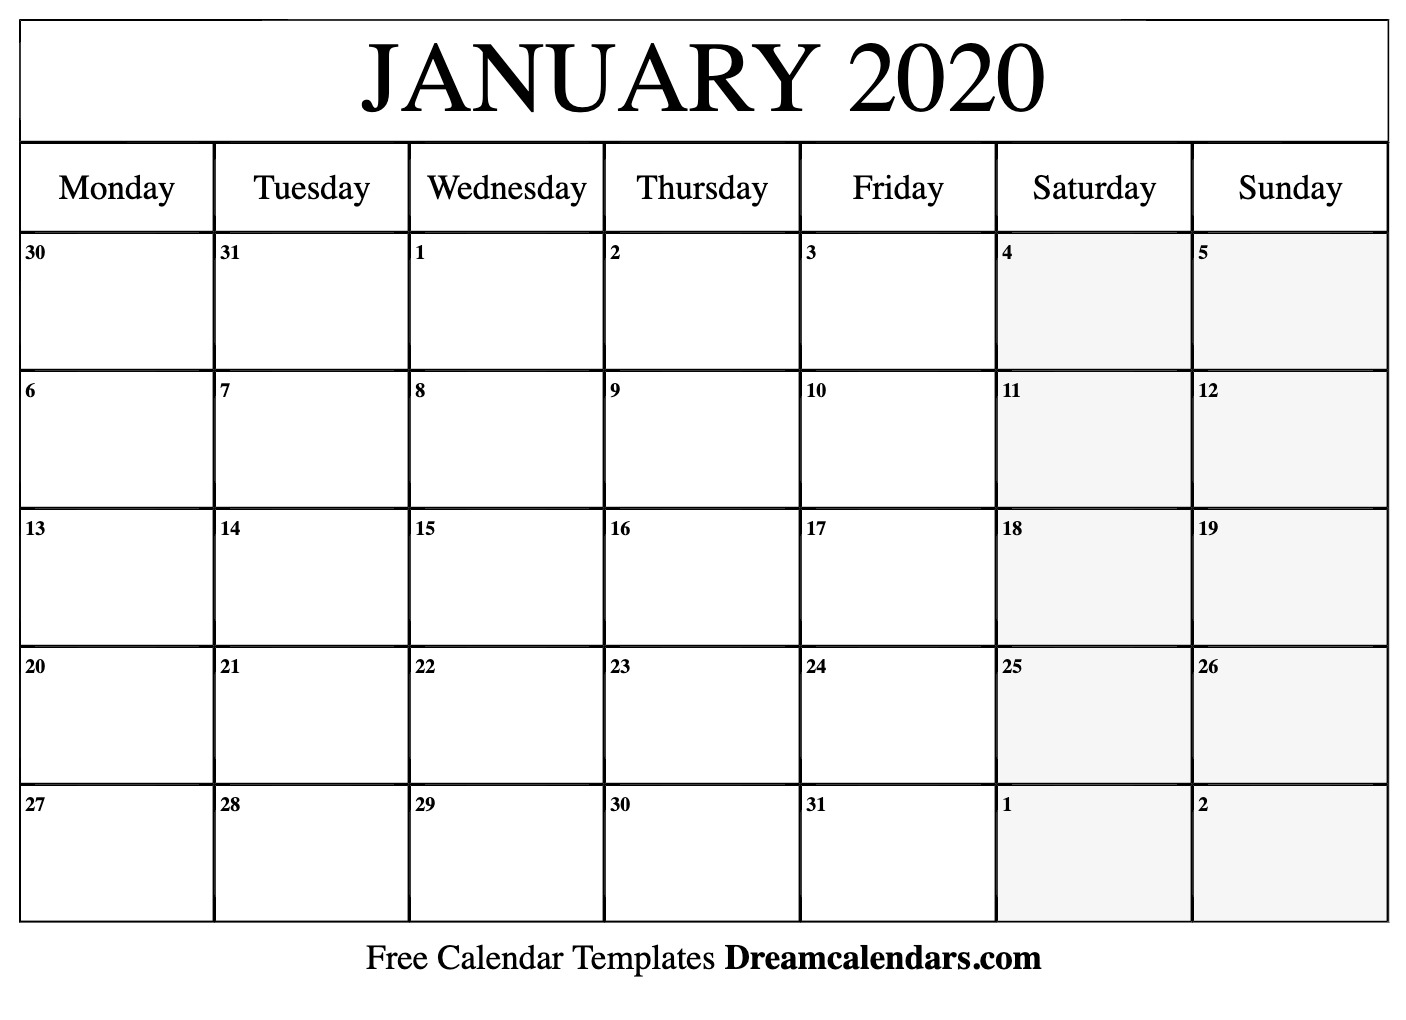 Calendars For January 2020 Printable January 2020 Calendar